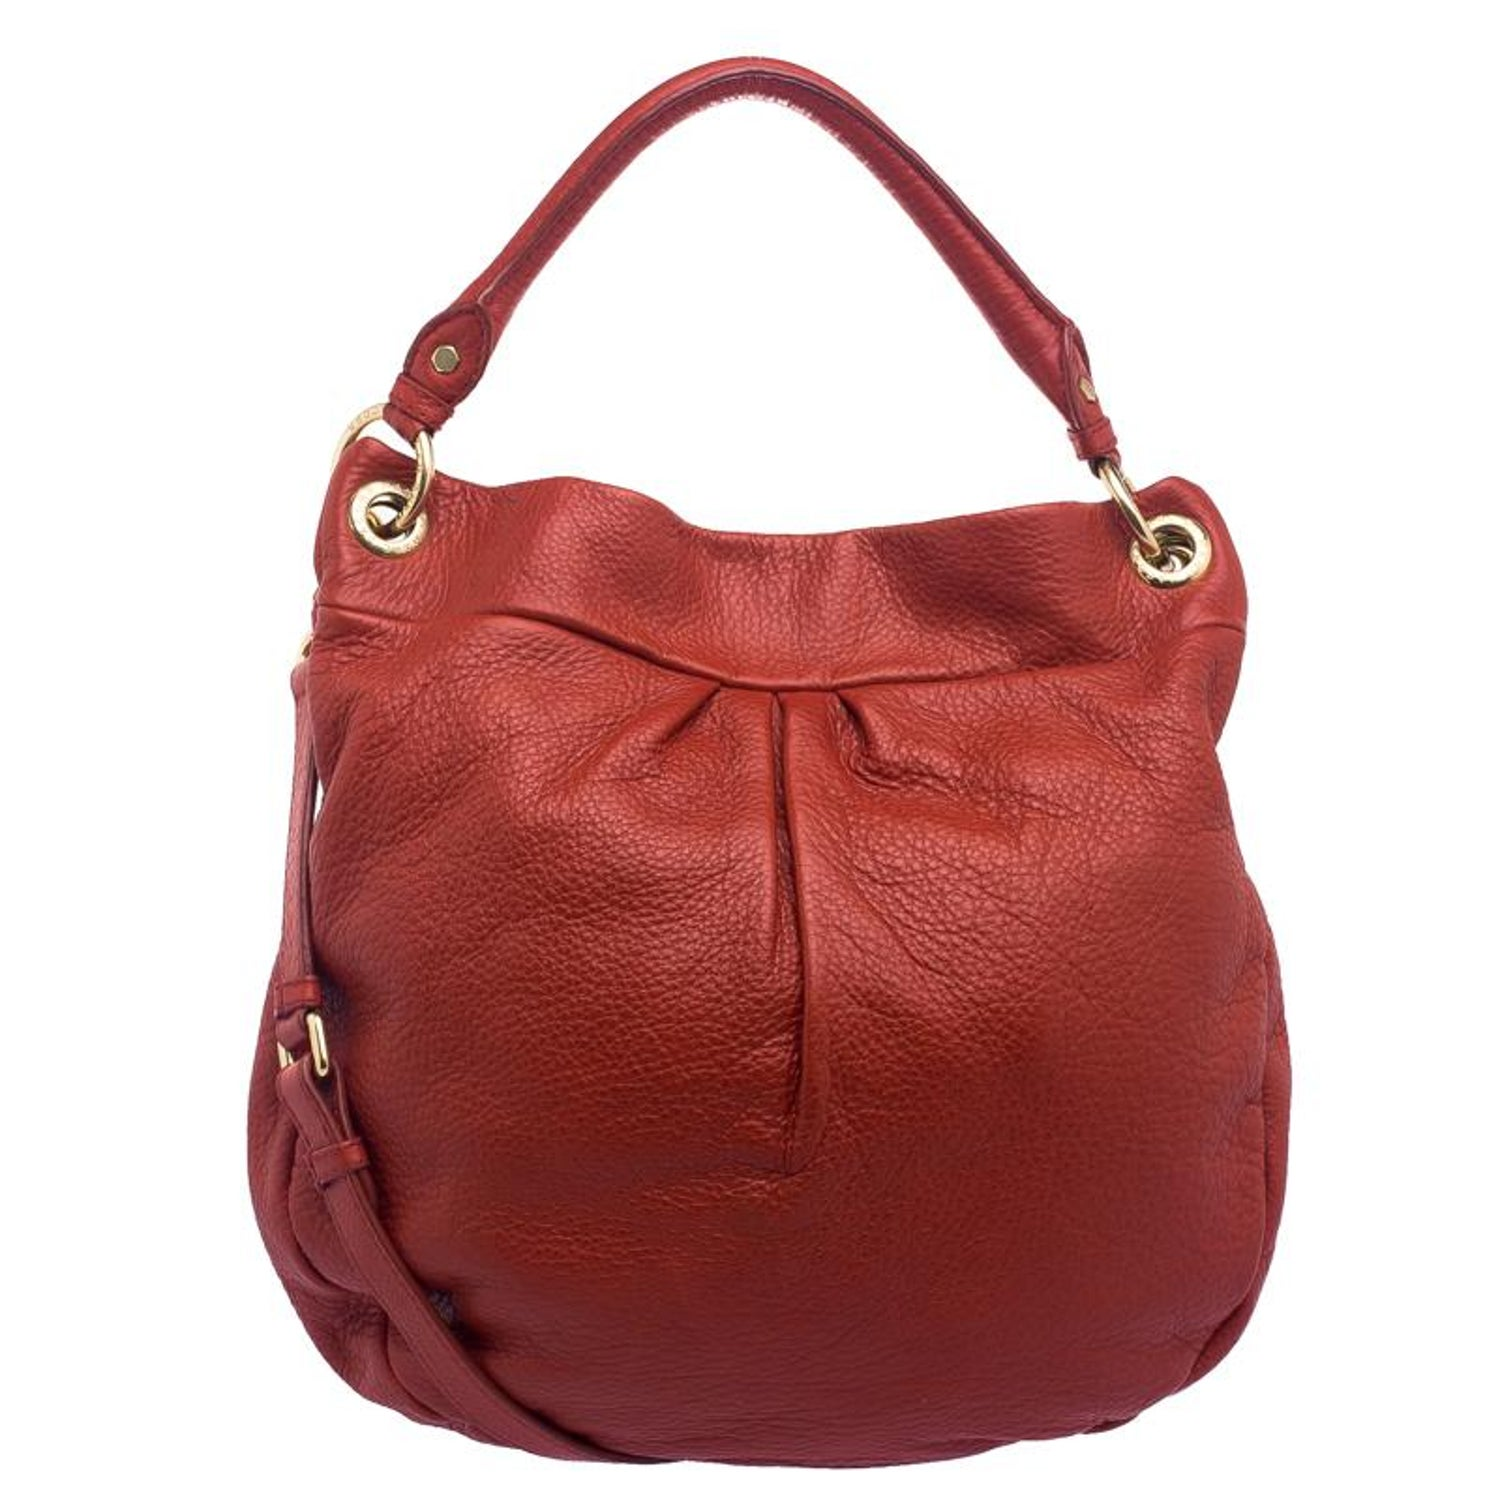 3a17e5dd686 Marc by Marc Jacobs Red Leather Classic Q Hillier Hobo For Sale at 1stdibs